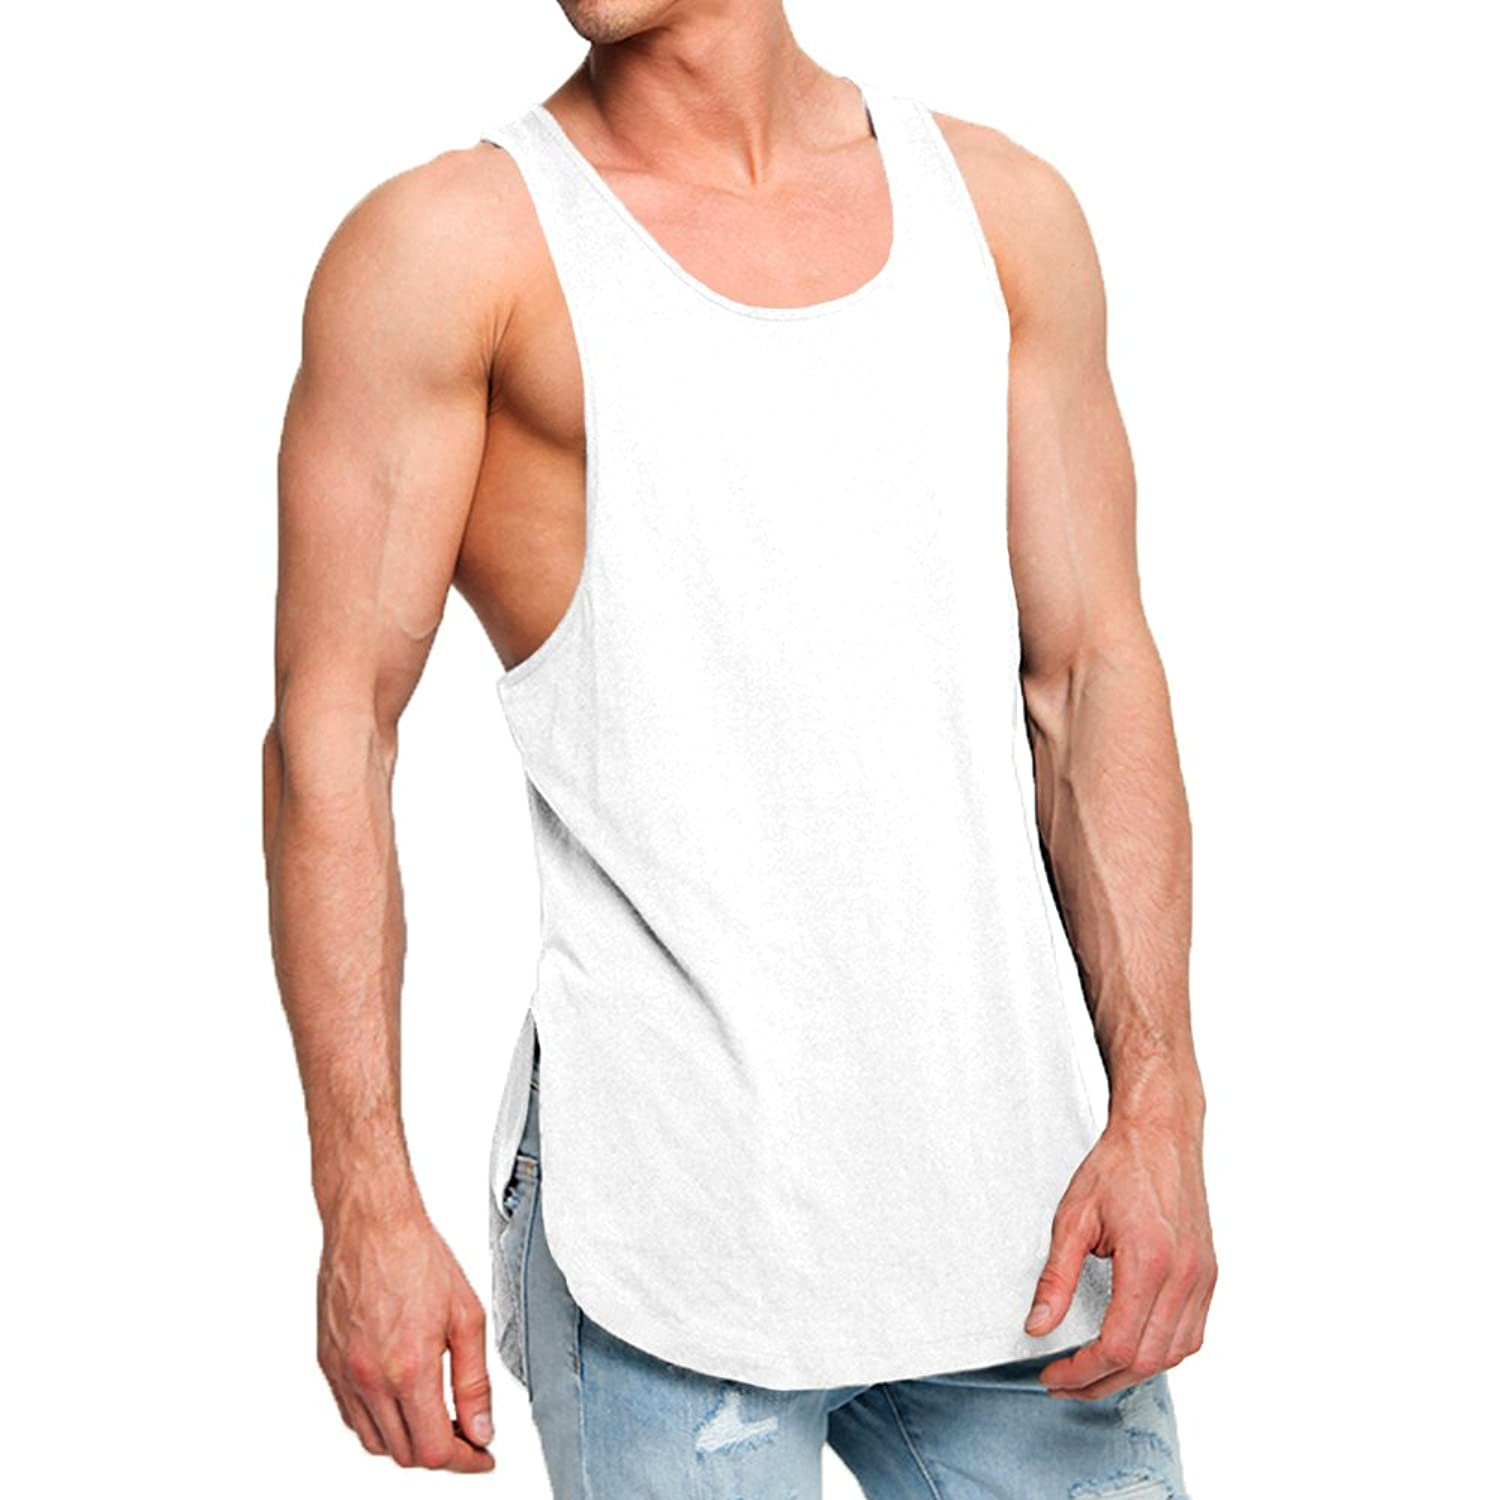 f7e9a5620cfd OA 3 Pack Men's Super Longline Muscle Fit Vests Tank Tops at Amazon Men's  Clothing store: